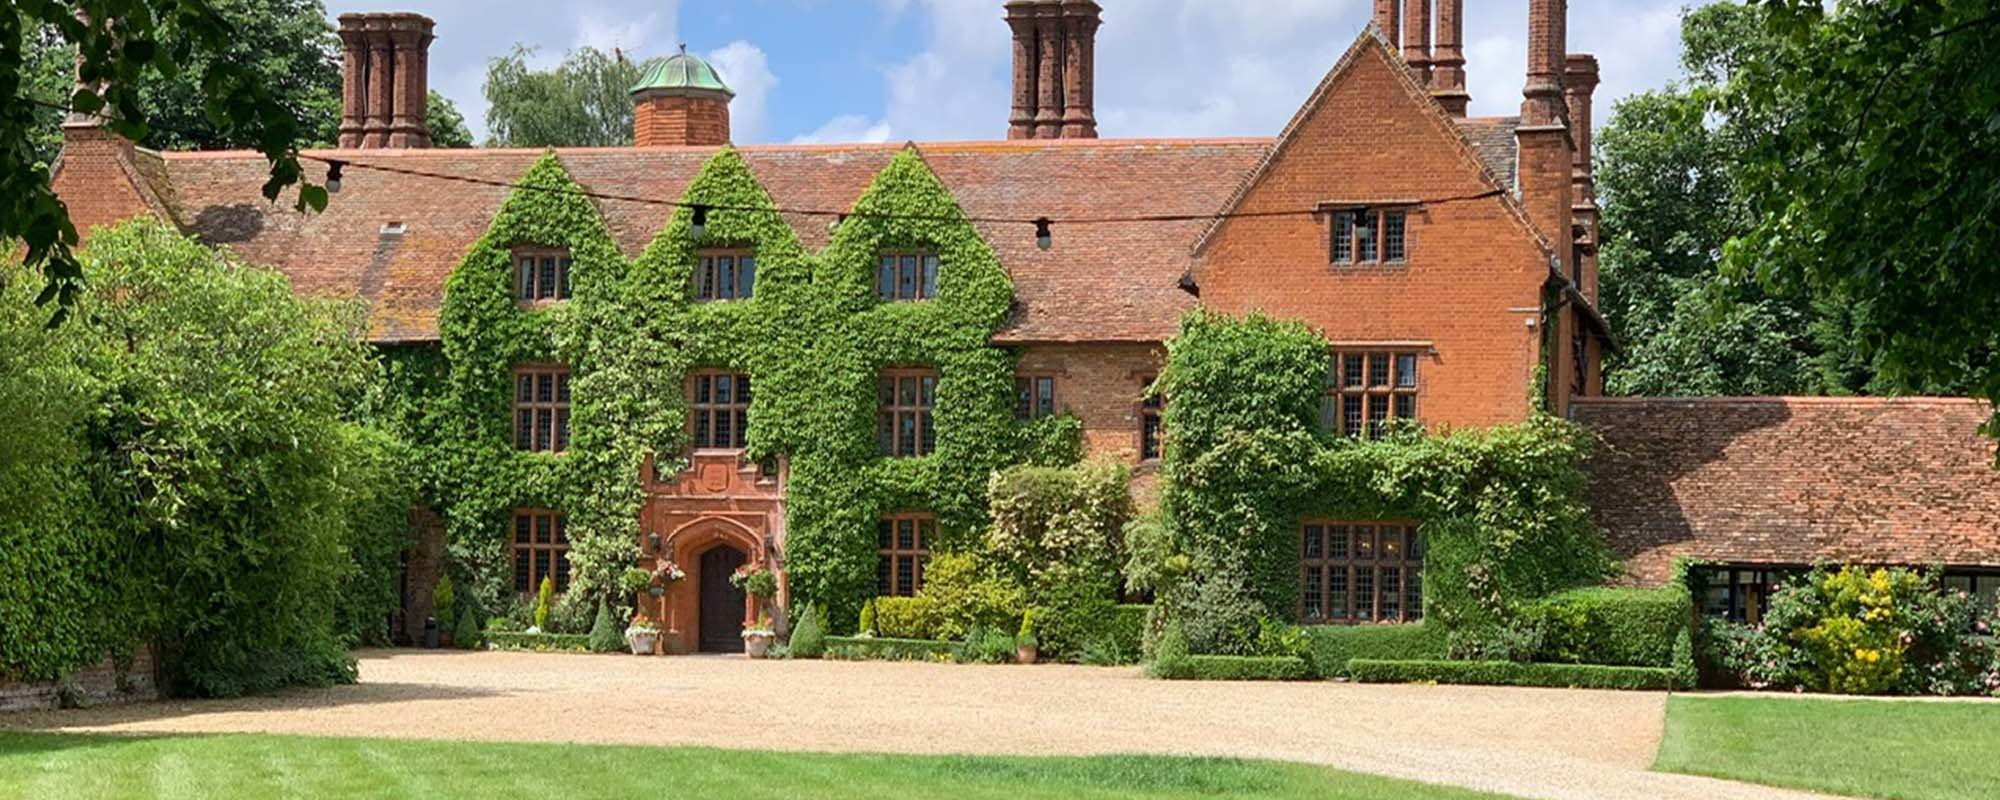 Woodhall Manor, Luxury Wedding car hire in Suffolk